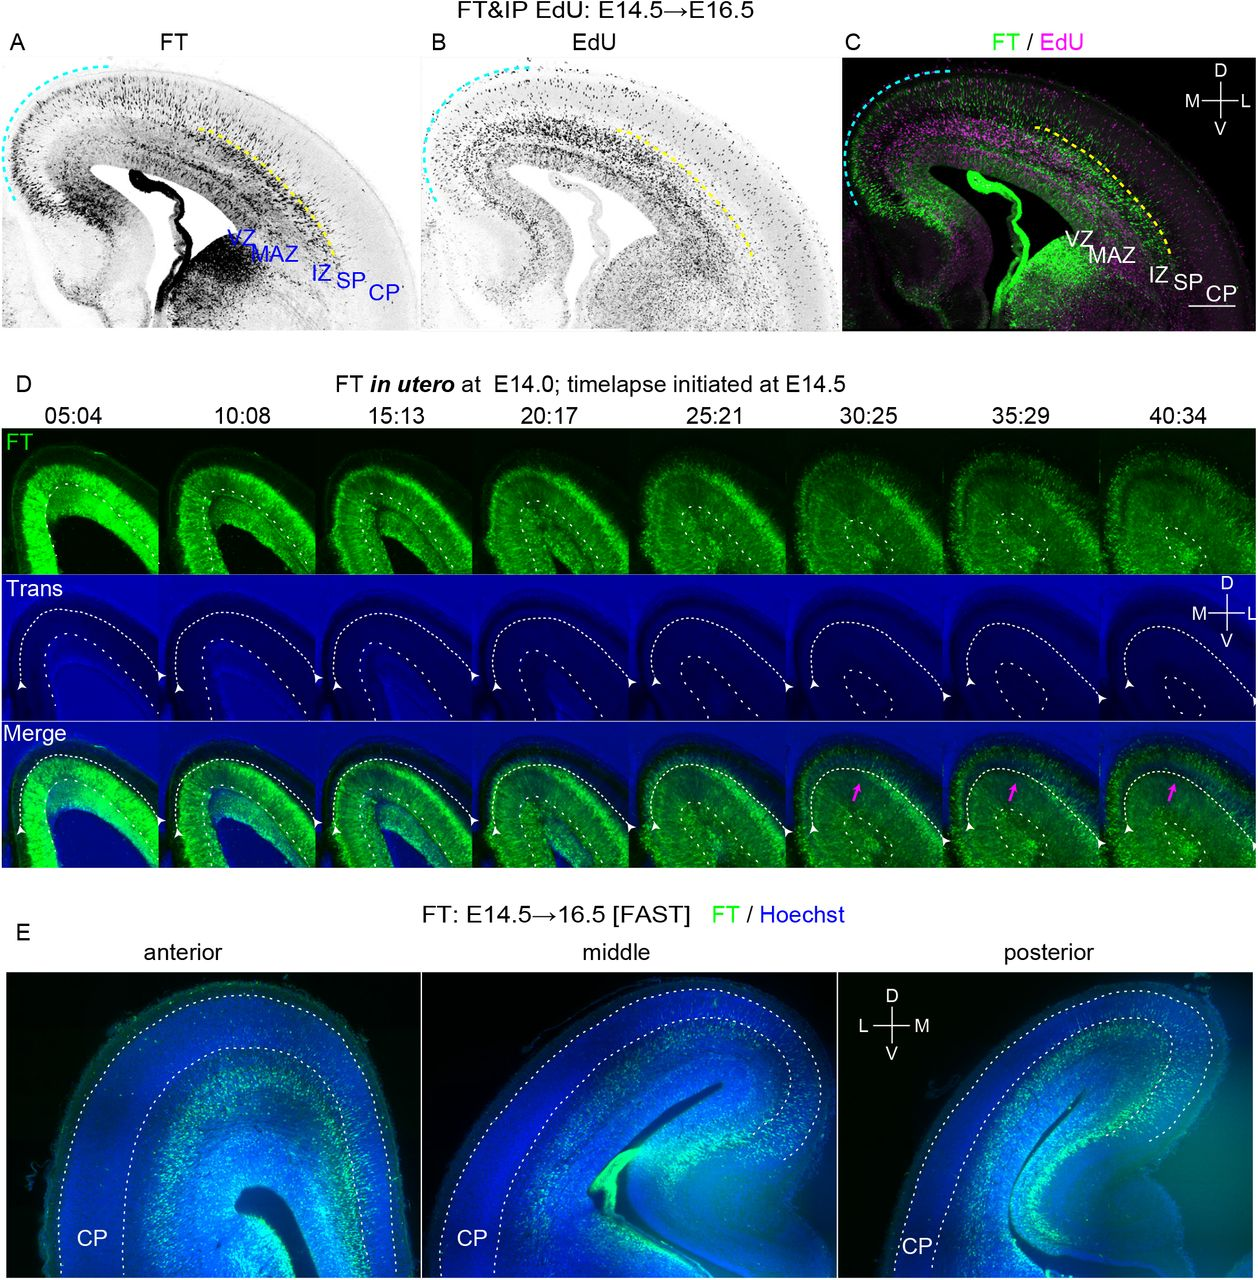 Regional differences in neuronal migration in the cerebral cortex revealed by FT. A-C: To visualize migration profile of the whole telencephalon, CFSE was injected into the ventricle of the E14.5 embryos and 5-Ethynyl-2'-deoxyuridine (EdU) was injected into the peritoneal cavity of the mother at the end of the surgery. Harvested at E16.5, many cells labeled with FT reached the superficial part of the CP in the dorsomedial cortex (cyan dotted line), while almost no cells reached the CP in the dorsolateral cortex (A, C). In the dorsolateral cortex, many neurons were just below the subplate (SP) (yellow dotted line). Such a clear difference in neuronal migration was not detected by EdU (B, C). D: FT labeling was performed at E14.0 and slice culture was prepared at E14.5. Labeled cells left the VZ and migrate in the MAZ in multipolar morphology (10:08-25:21). They gradually obtained polarity and migrate in the intermediate zone (20:17-30:25) and reached just below the SP (relatively dark band in the transmitted light channel, highlighted by white arrows). Neurons in the dorsomedial cortex (more medial than the magenta arrow) migrate smoothly to reach the most superficial part of the cortical plate(25:21-30:25), while in the dorsolateral cortex (more lateral than the magenta arrow), neurons seemed to sojourn transiently below the SP (clear in the regions lateral than the magenta arrow)(30:25-35:29). These cells subsequently migrated into the CP in the locomotion mode (35:29-40:34). E: FAST 3D imaging of E16.5 brains in which FT labeling was performed at E14.5. Anterior and posterior representative sections were shown in addition to a section at the interventricular foramen. Supplemental Movie 1 shows a whole 3D movie taken from this brain. EdU, 5-Ethynyl-2'-deoxyuridine; DAPI, 4',6-diamidino-2-phenylindole; FT, FlashTag; IP, intraperitoneal injection; VZ, ventricular zone; MAZ, multipolar cell accumulation zone; IZ, intermediate zone; SP, subplate; CP, cortical plate; M,